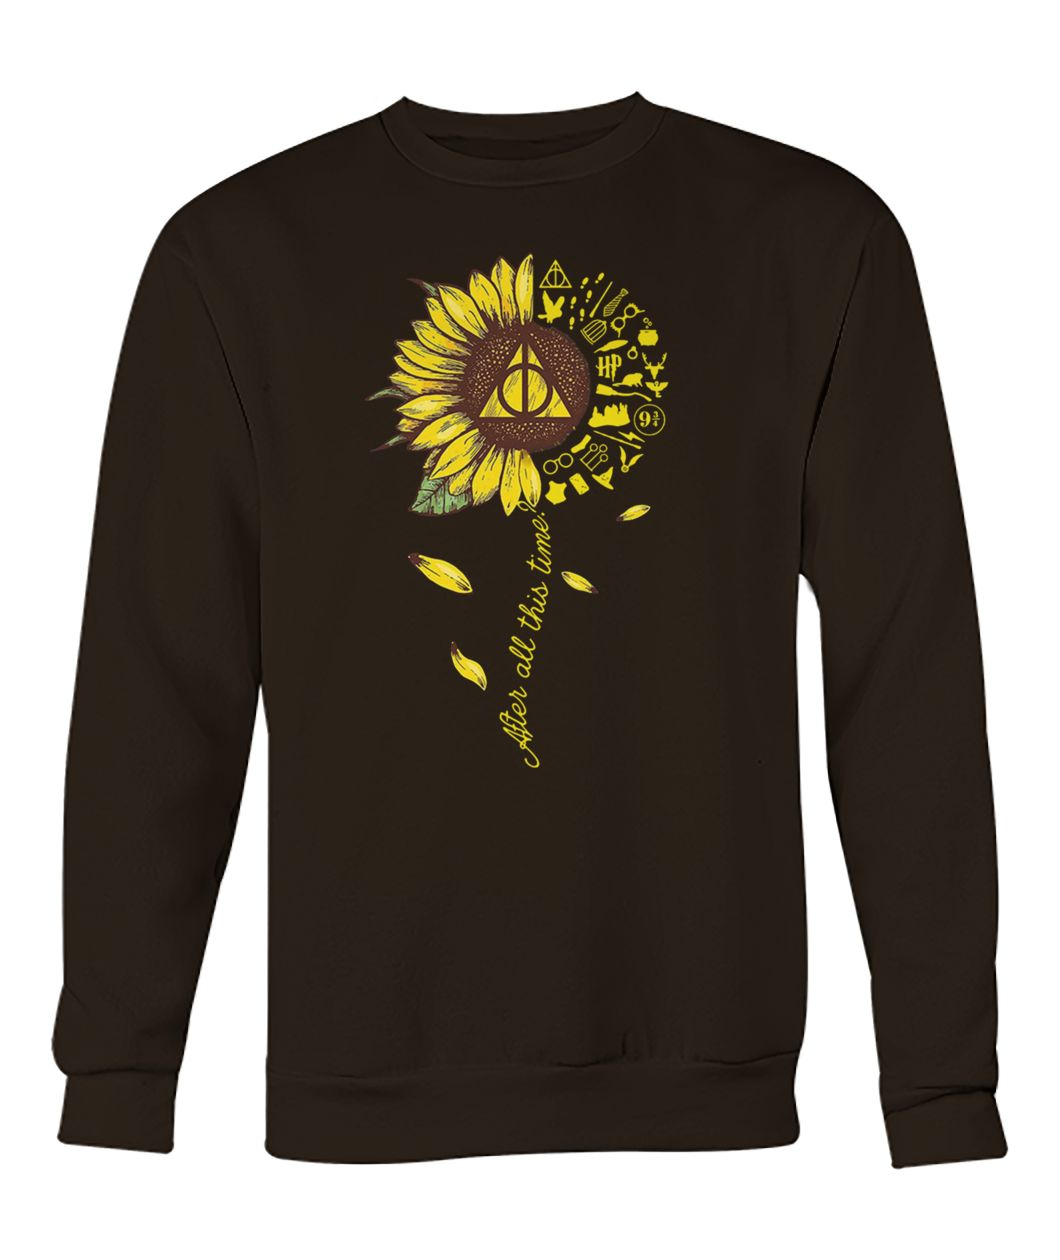 Harry potter after all this time sunflower crew neck sweatshirt